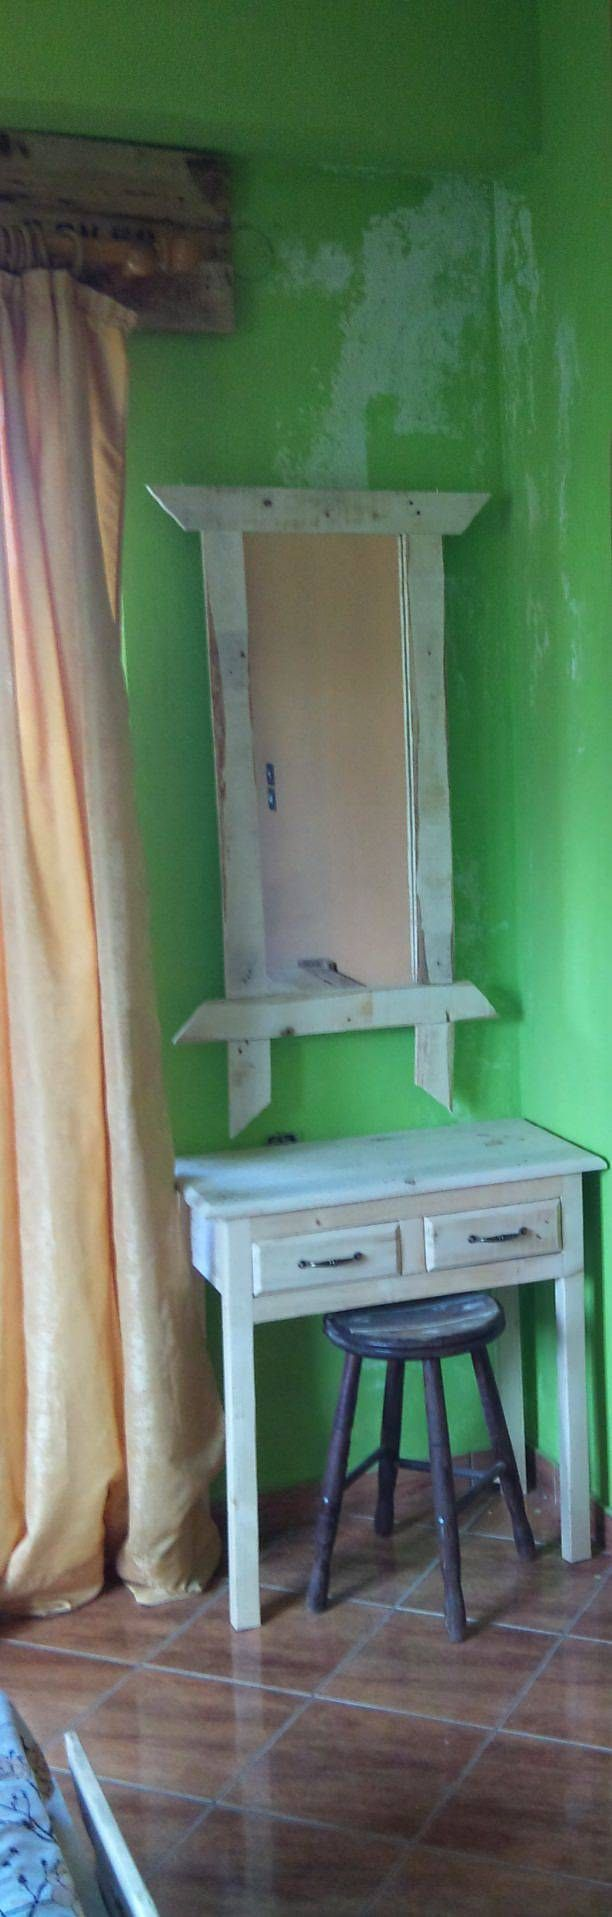 Pallet Makeup Table With Mirror #PalletFurniture, #PalletTable, #RecycledPallet, #RepurposedPallet